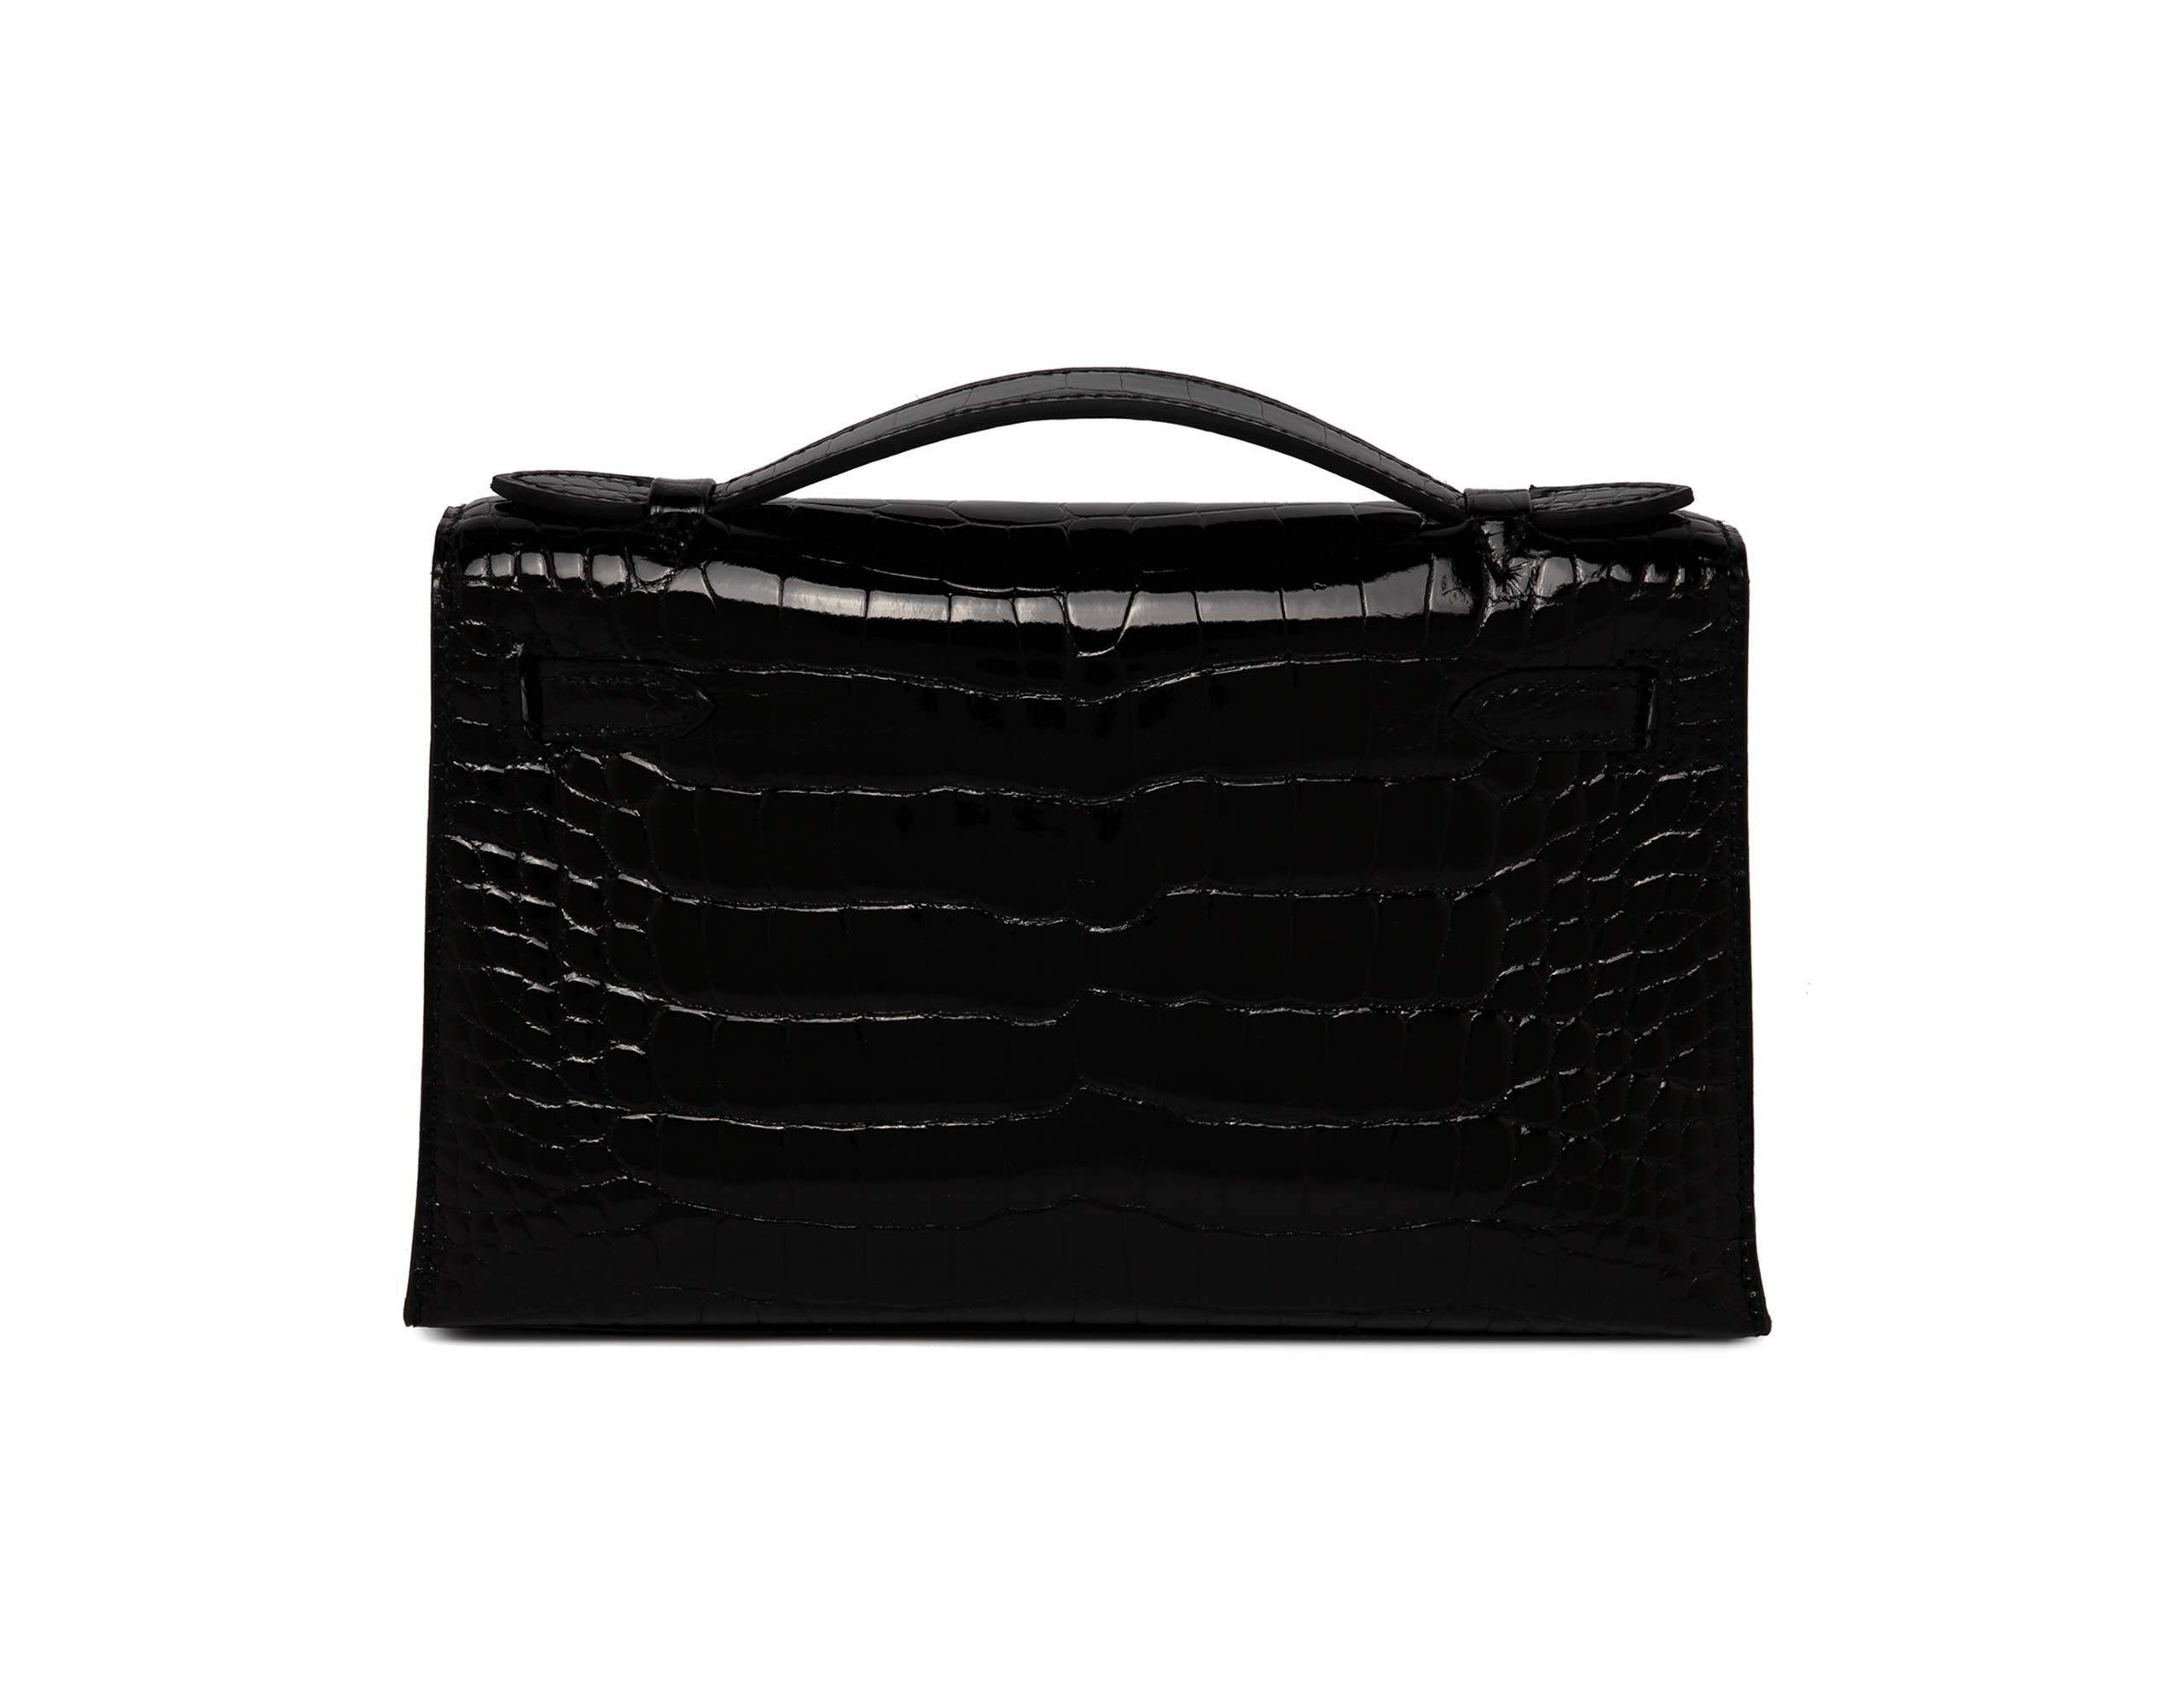 hermes-mini-kelly-pochette-black-alligator-ghw-kp04-LG02